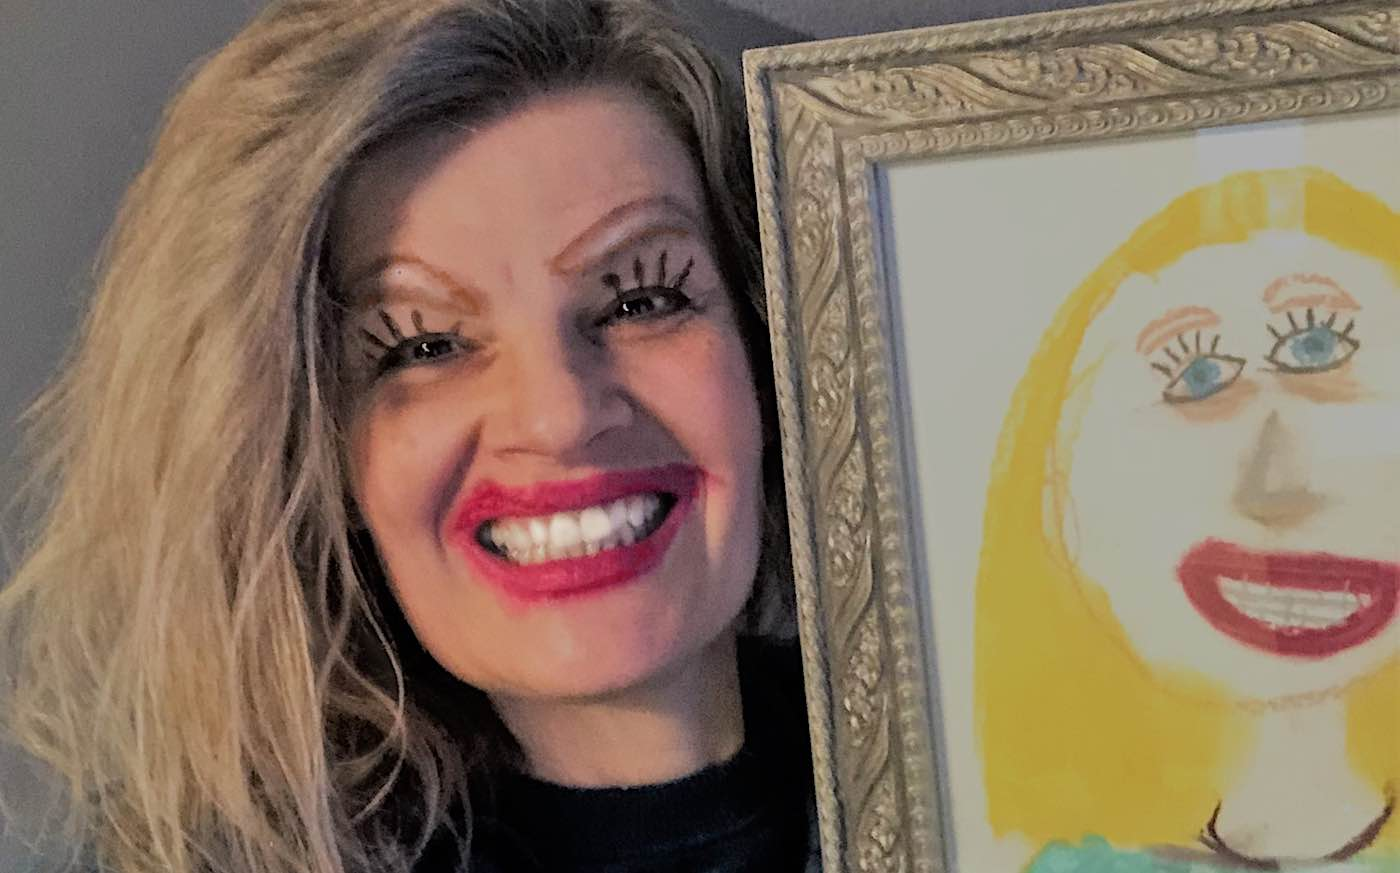 A photo of the mom's recreated look next to the original drawing for comparison